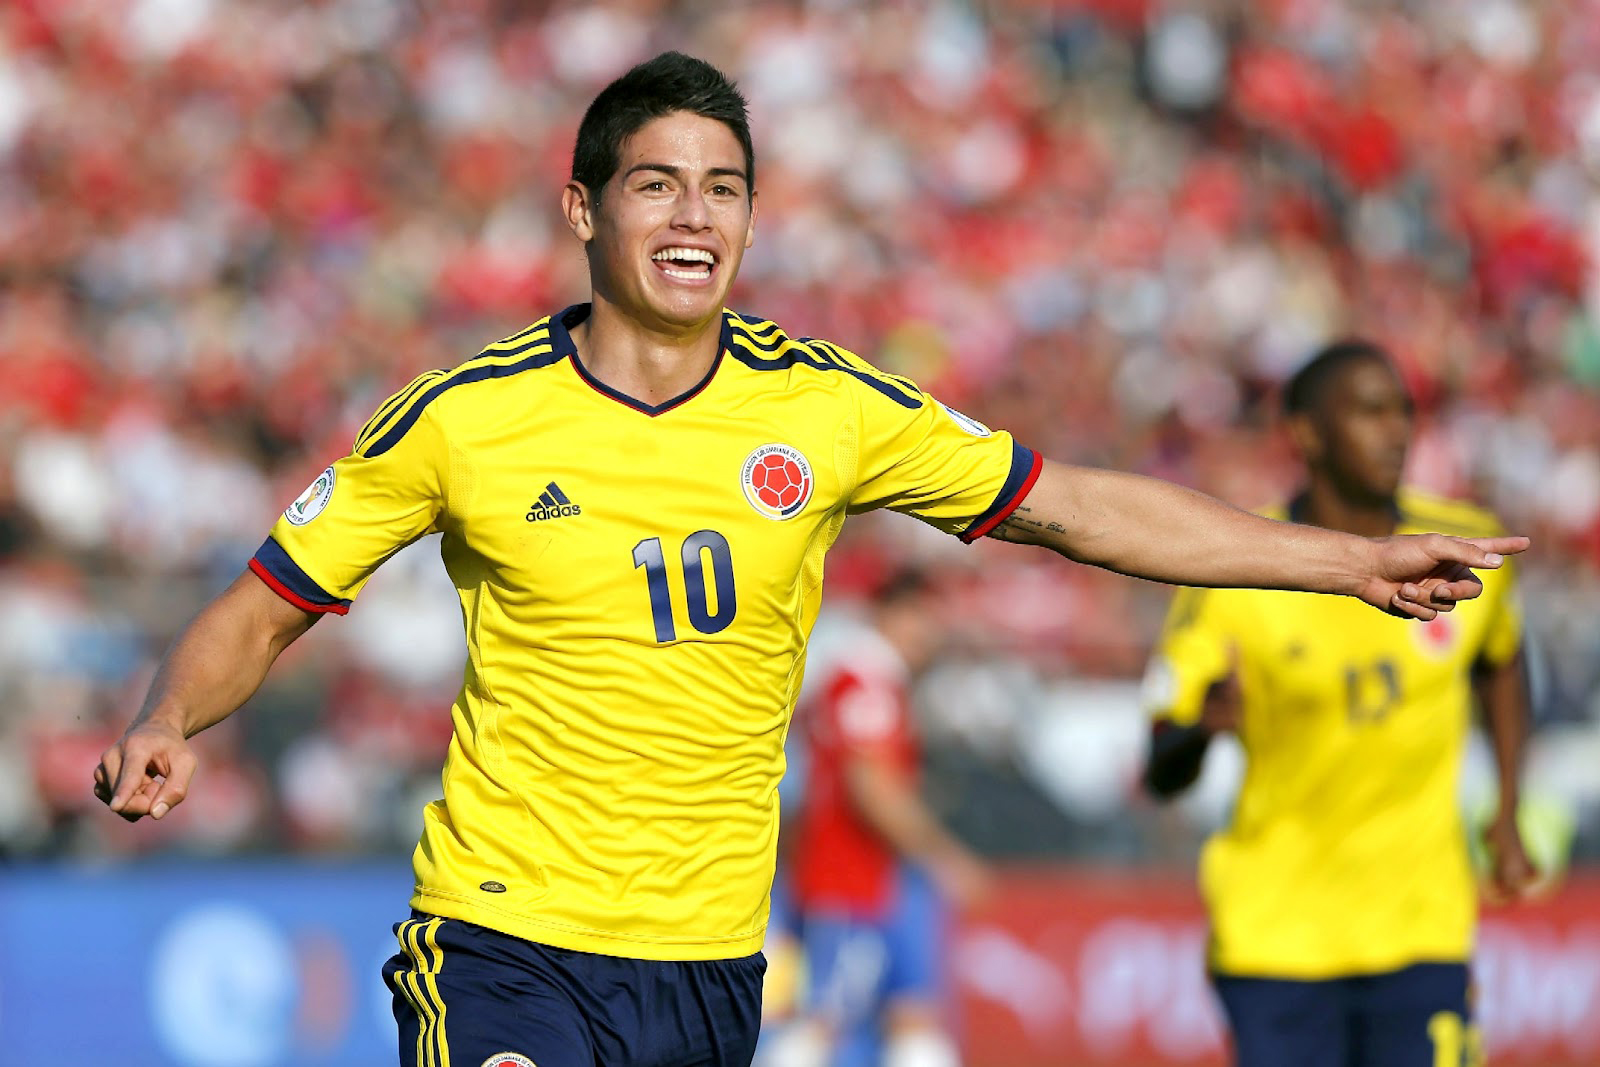 James Rodriguez, AS Monaco new jersey for 2013-2014